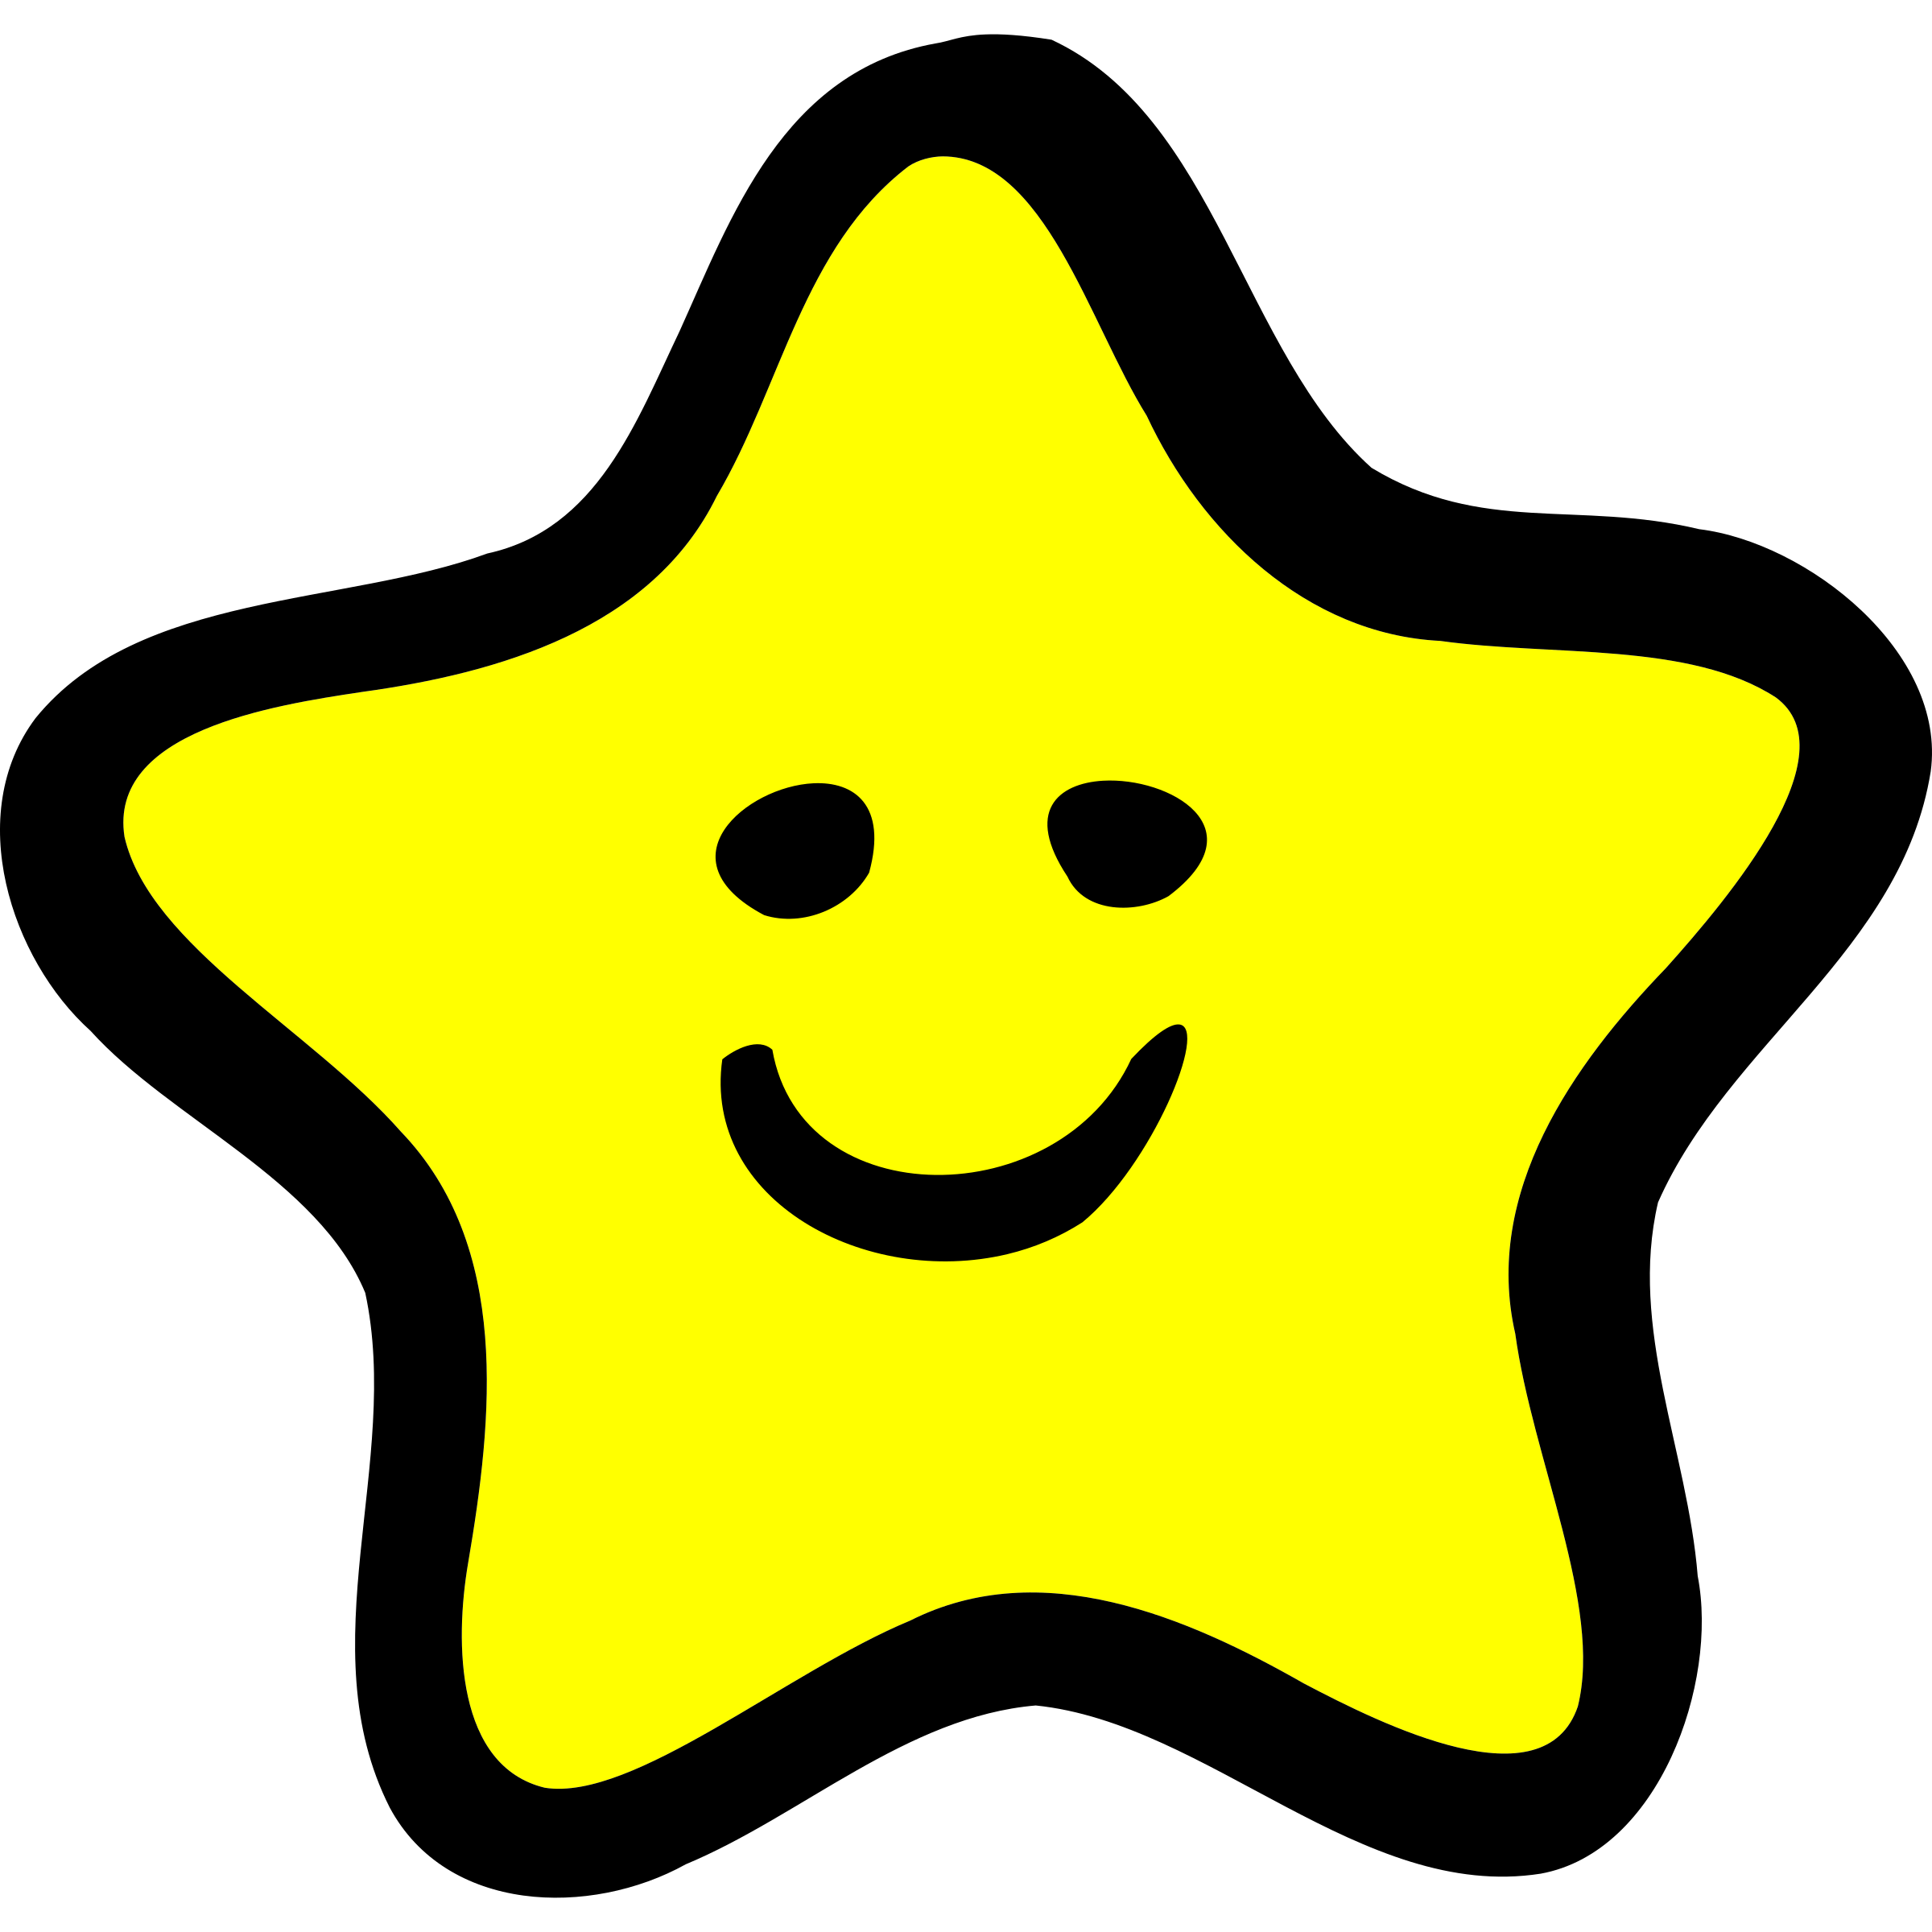 Smiley star clipart banner library download Clipart - Happy Star banner library download